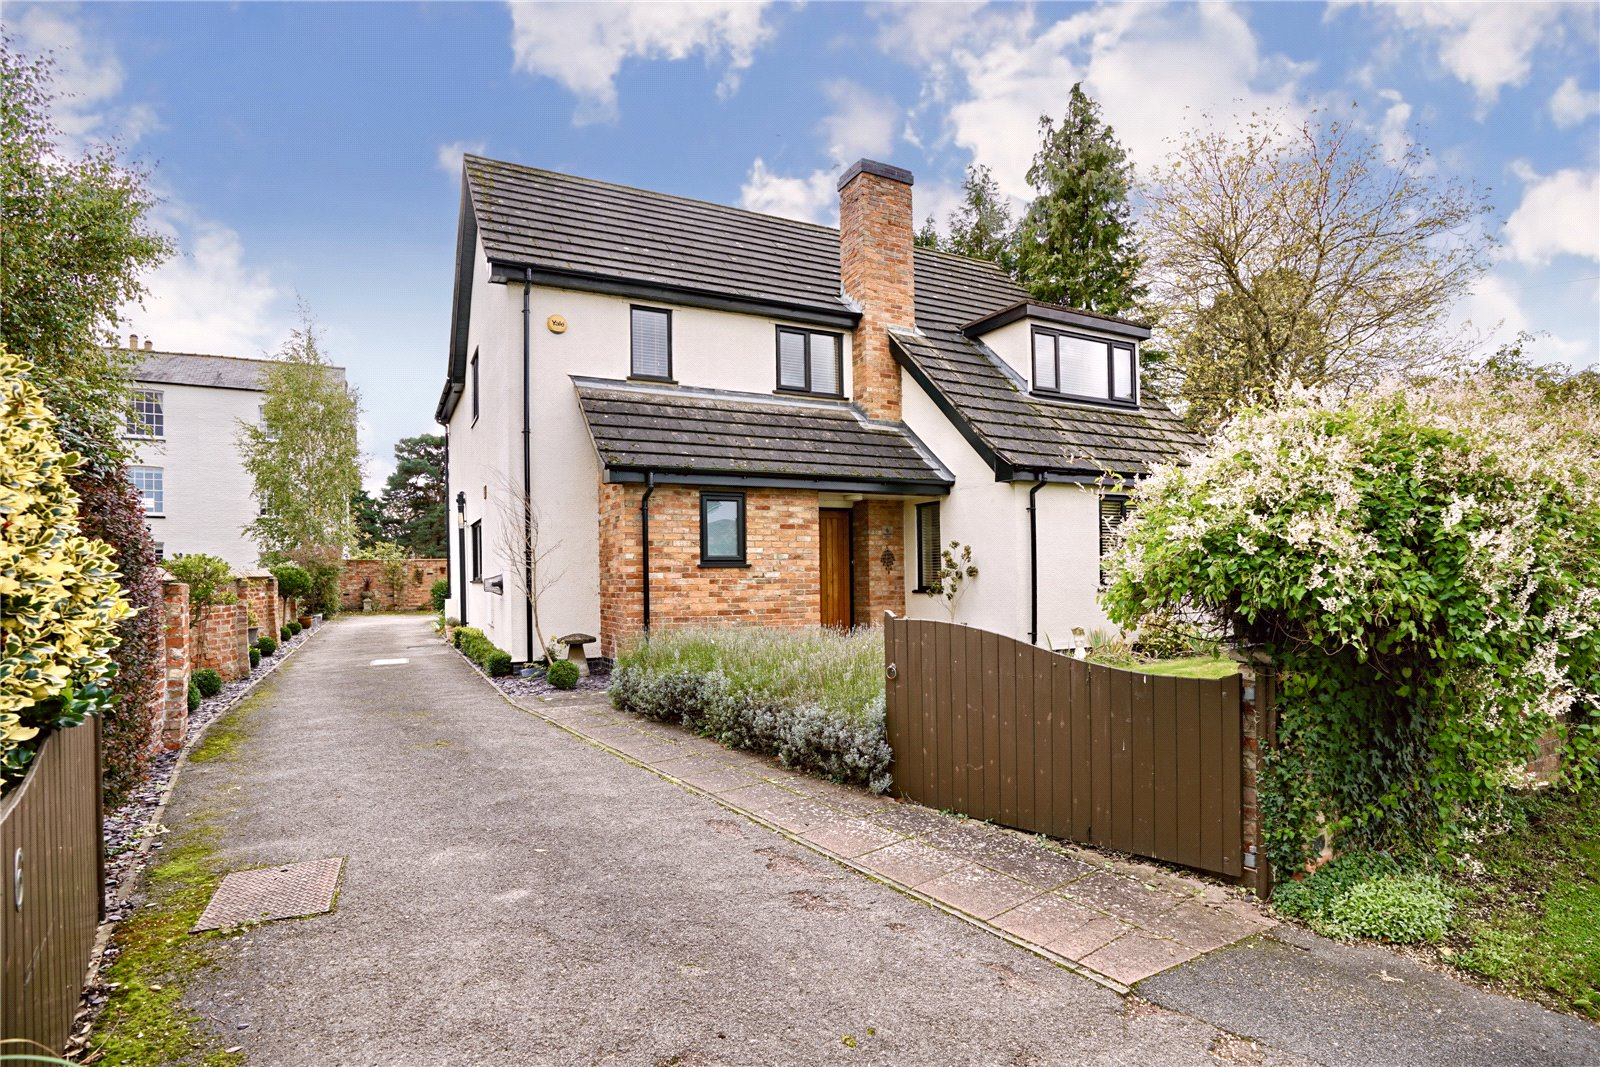 4 bed house for sale in Eaton Socon 2